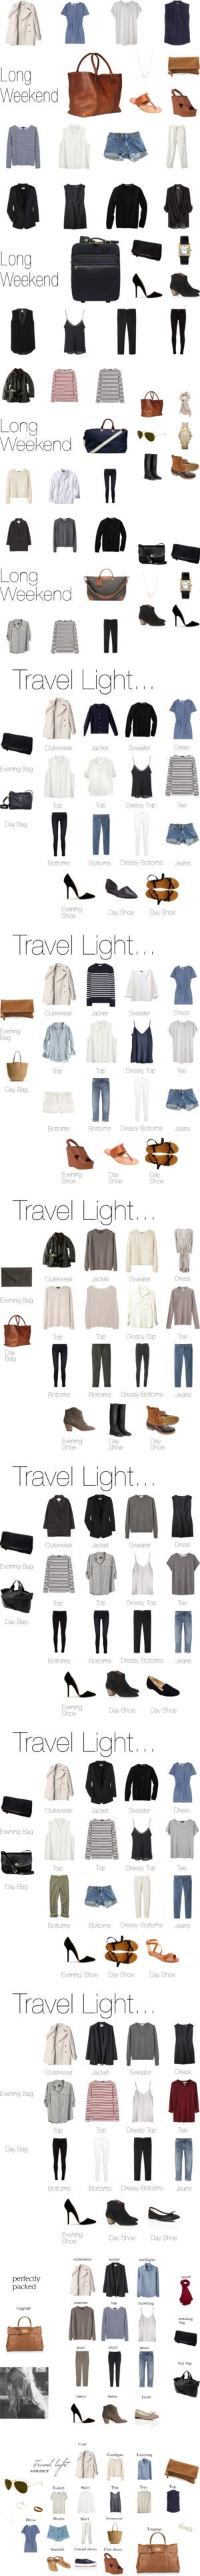 """""""Packing Light"""" by keelyhenesey"""